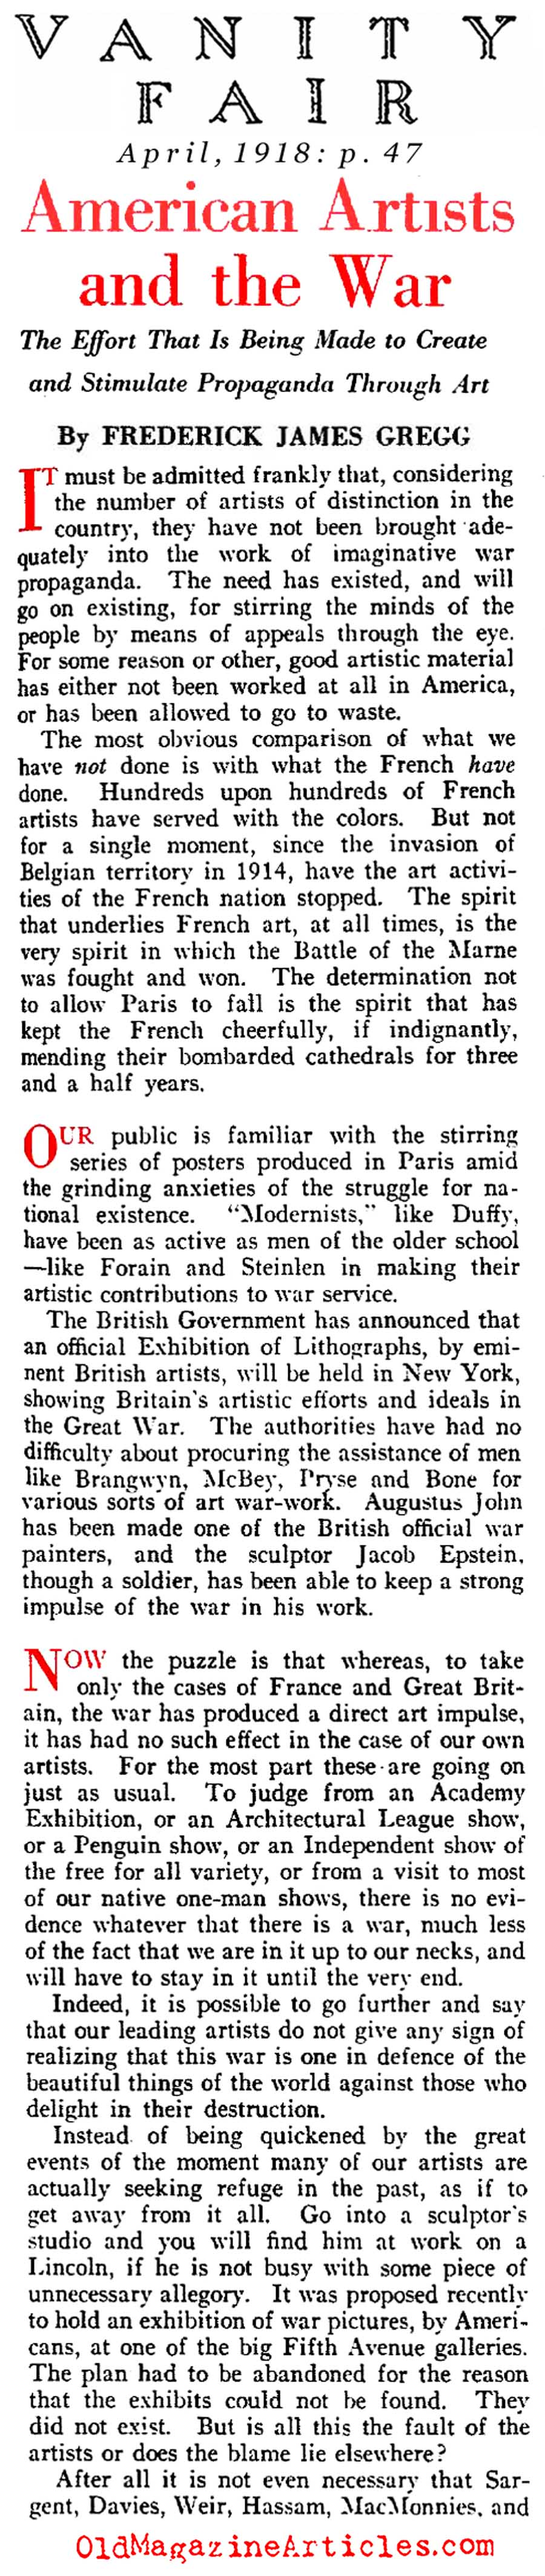 W.W. I  Poster Artists Criticized (Vanity Fair Magazine, 1918)